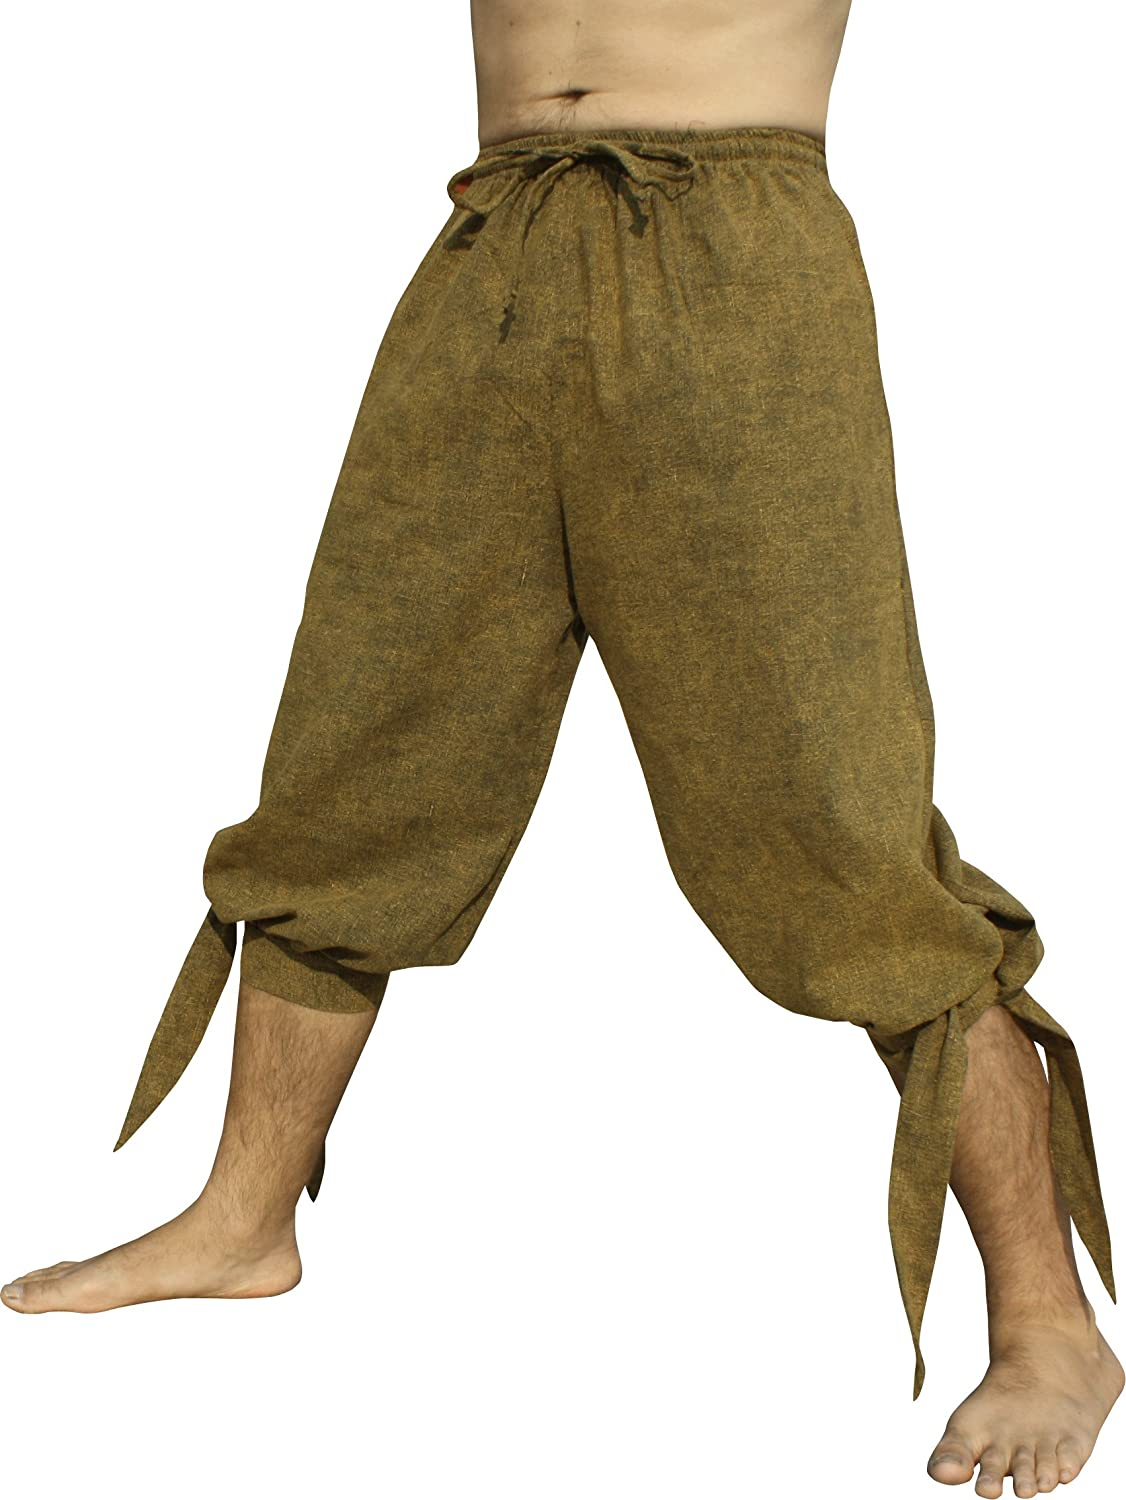 Raan Pah Muang Side Tied Leg Raw Stonewashed Cotton Buccaneer Pirate Pants